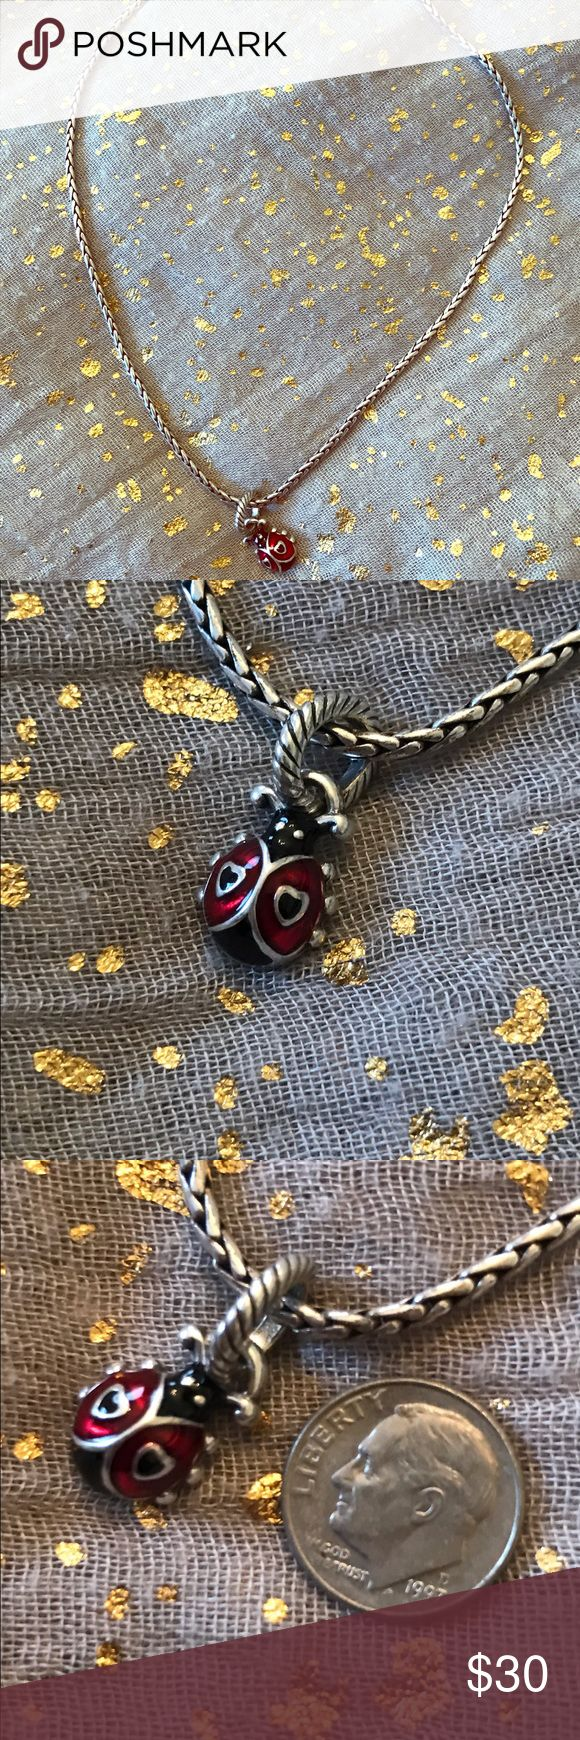 """Brighton 20"""" Ladybug Necklace Brighton 20"""" Ladybug Necklace, Silver Necklace with silver ladybug charm, 20"""" including clasp, Good Condition, Also included GWP: Brighton 10"""" Silver Ladybug Anklet Brighton Jewelry Necklaces"""